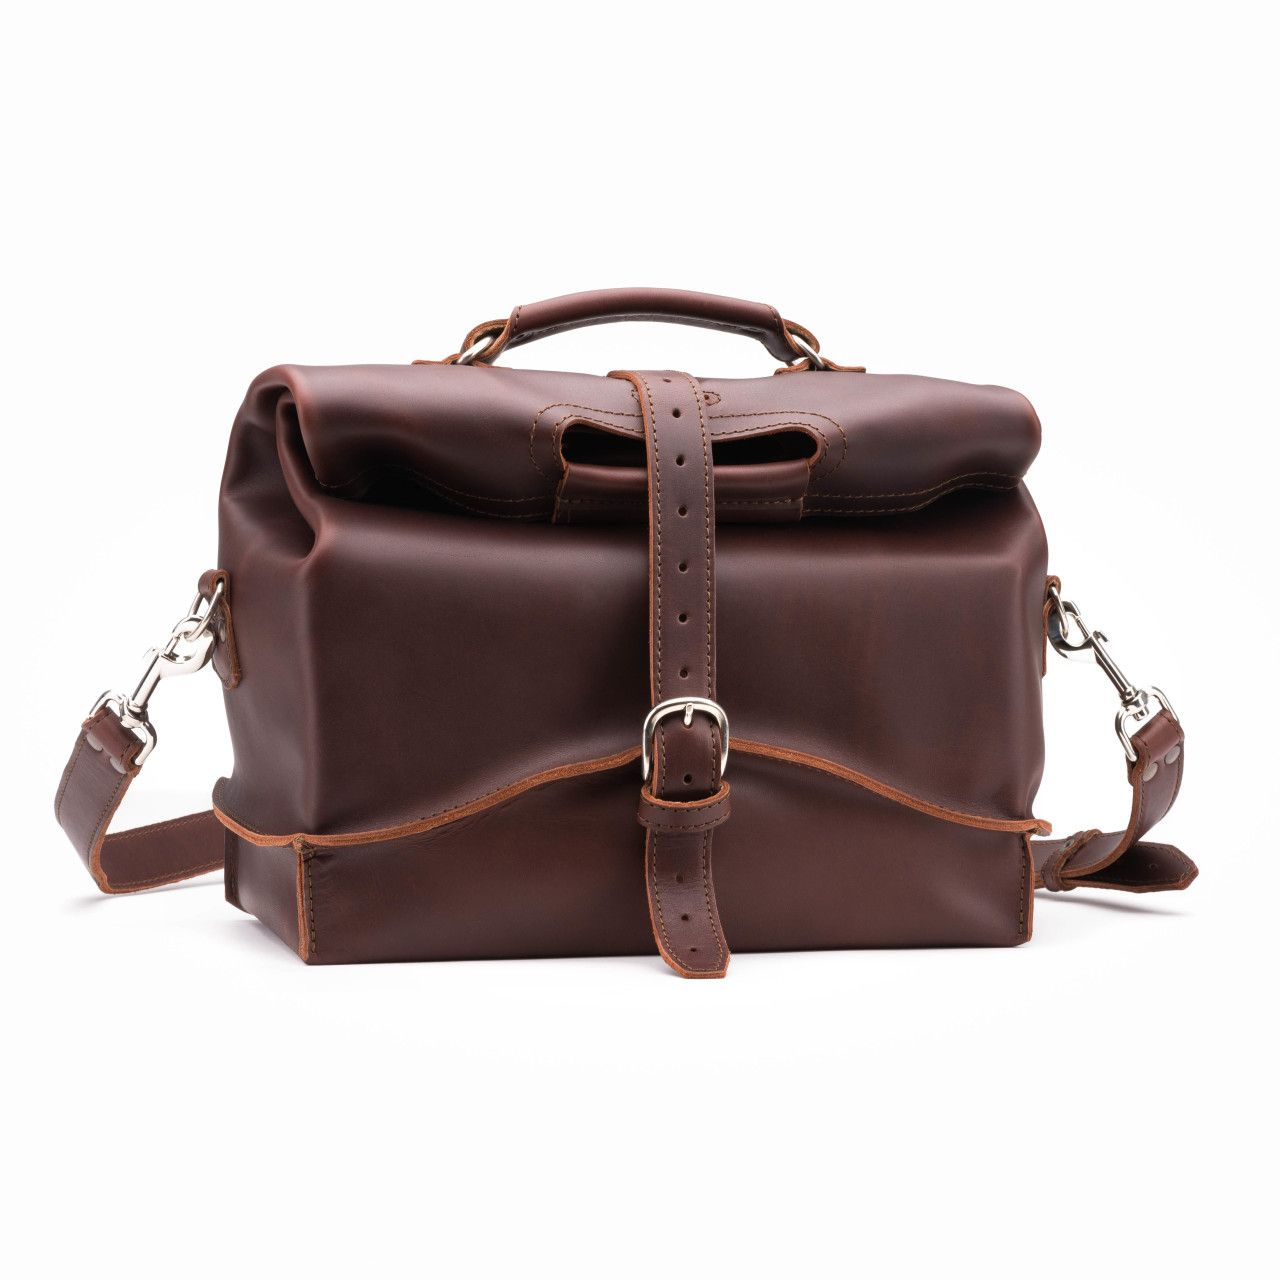 leather overnight bag large in chestnut leather